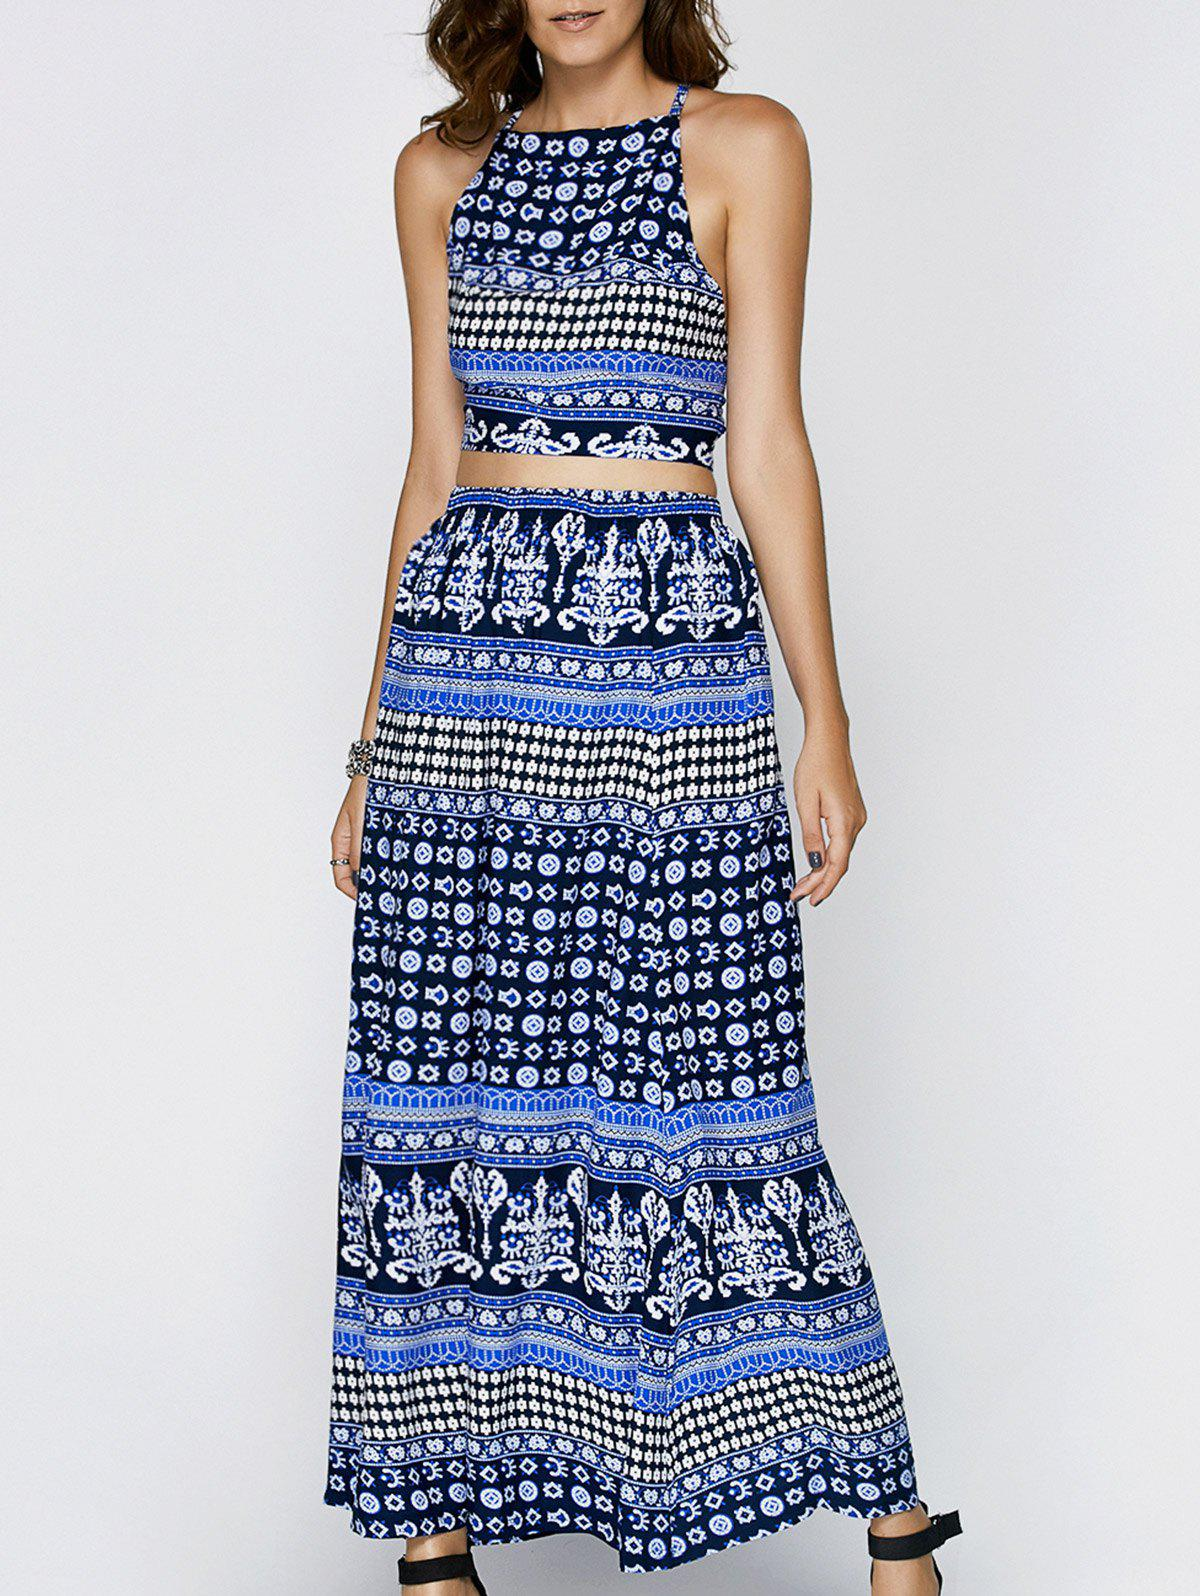 Stylish Women's Printed Backless Top + Maxi Skirt Twinset - BLUE M